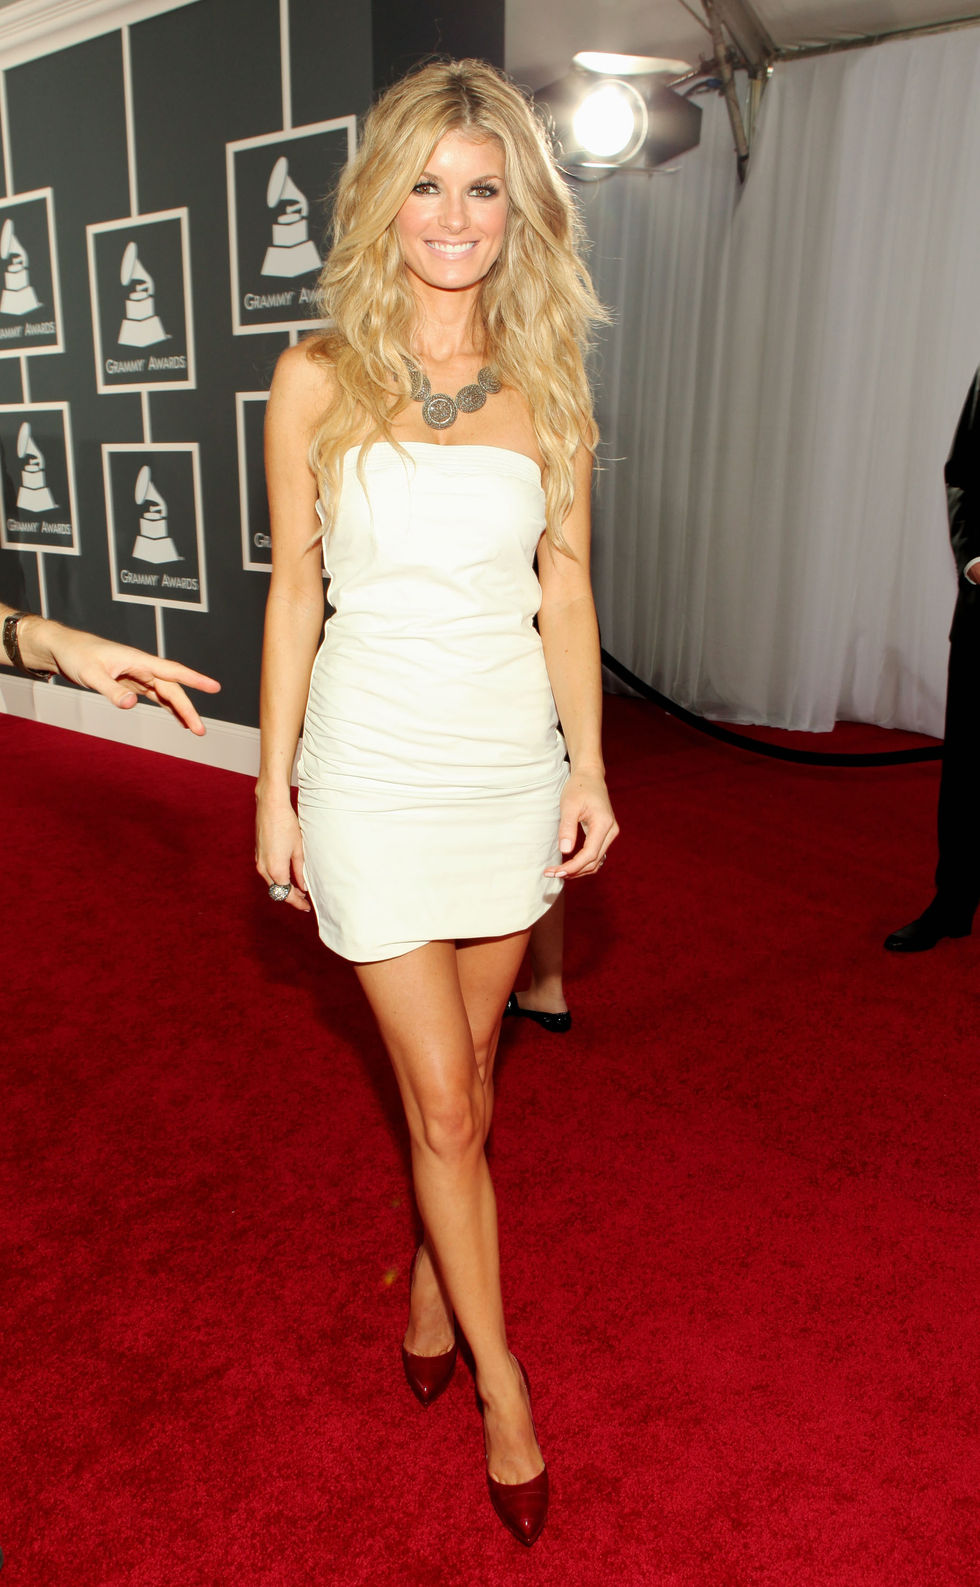 marisa-miller-52nd-annual-grammy-awards-in-los-angeles-06